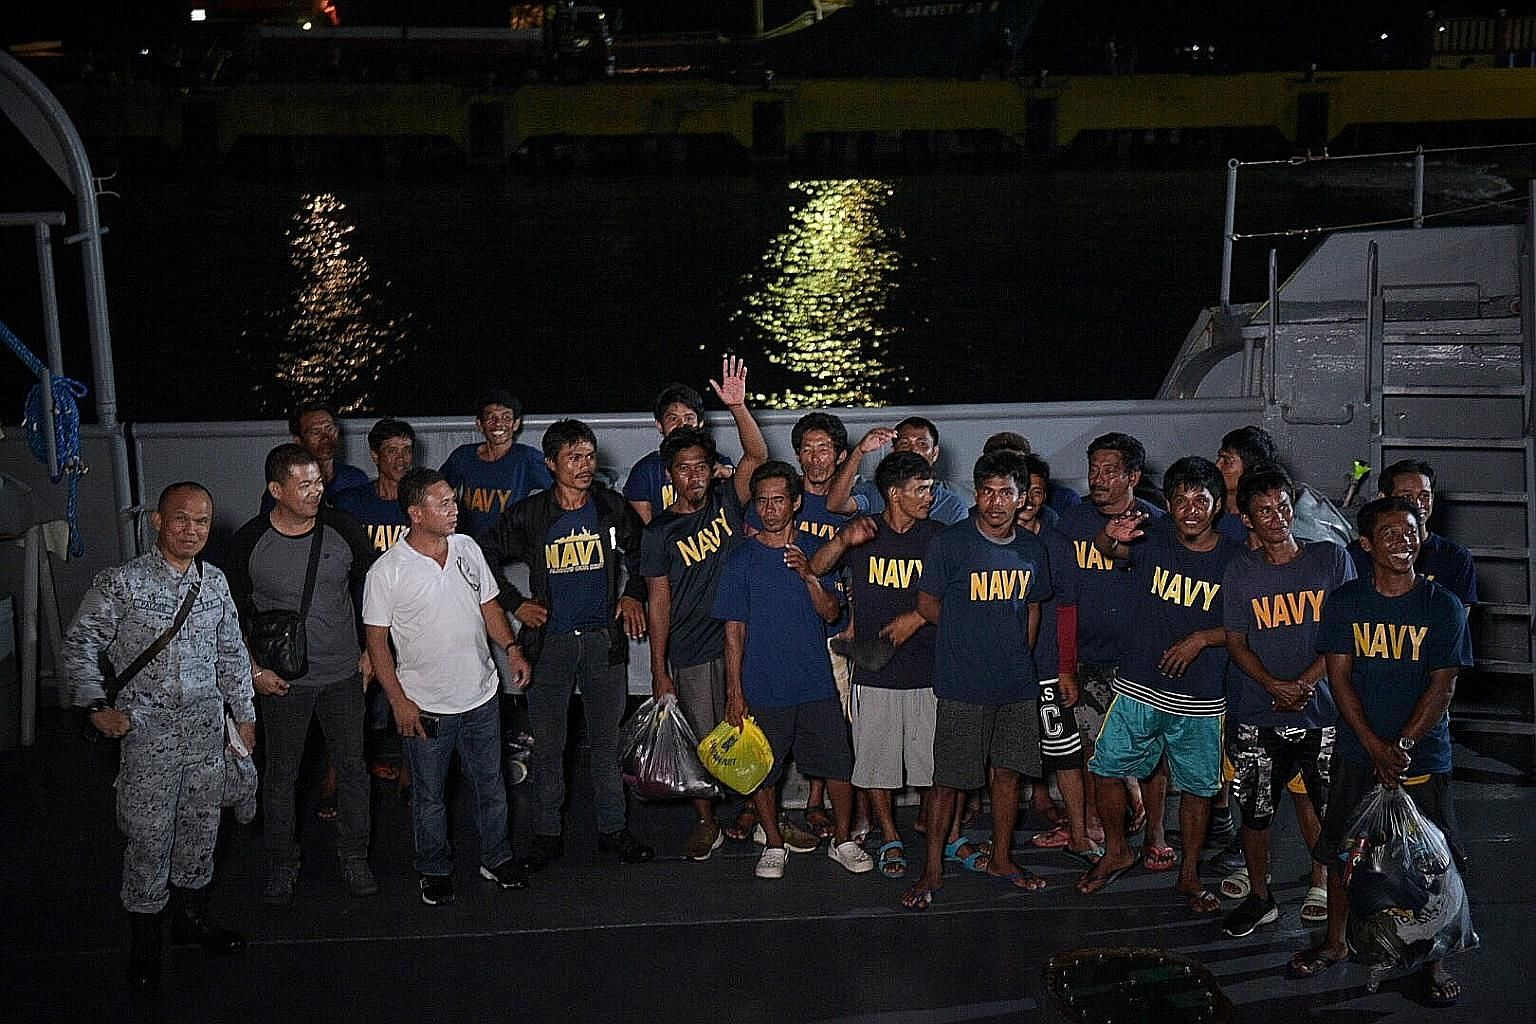 Filipino fishermen returning home on board a Philippine Navy vessel after their outrigger, the Gem-Vir, was allegedly hit by a Chinese vessel in the South China Sea. The 22 fishermen were later rescued by a Vietnamese boat. The Philippines has lodged